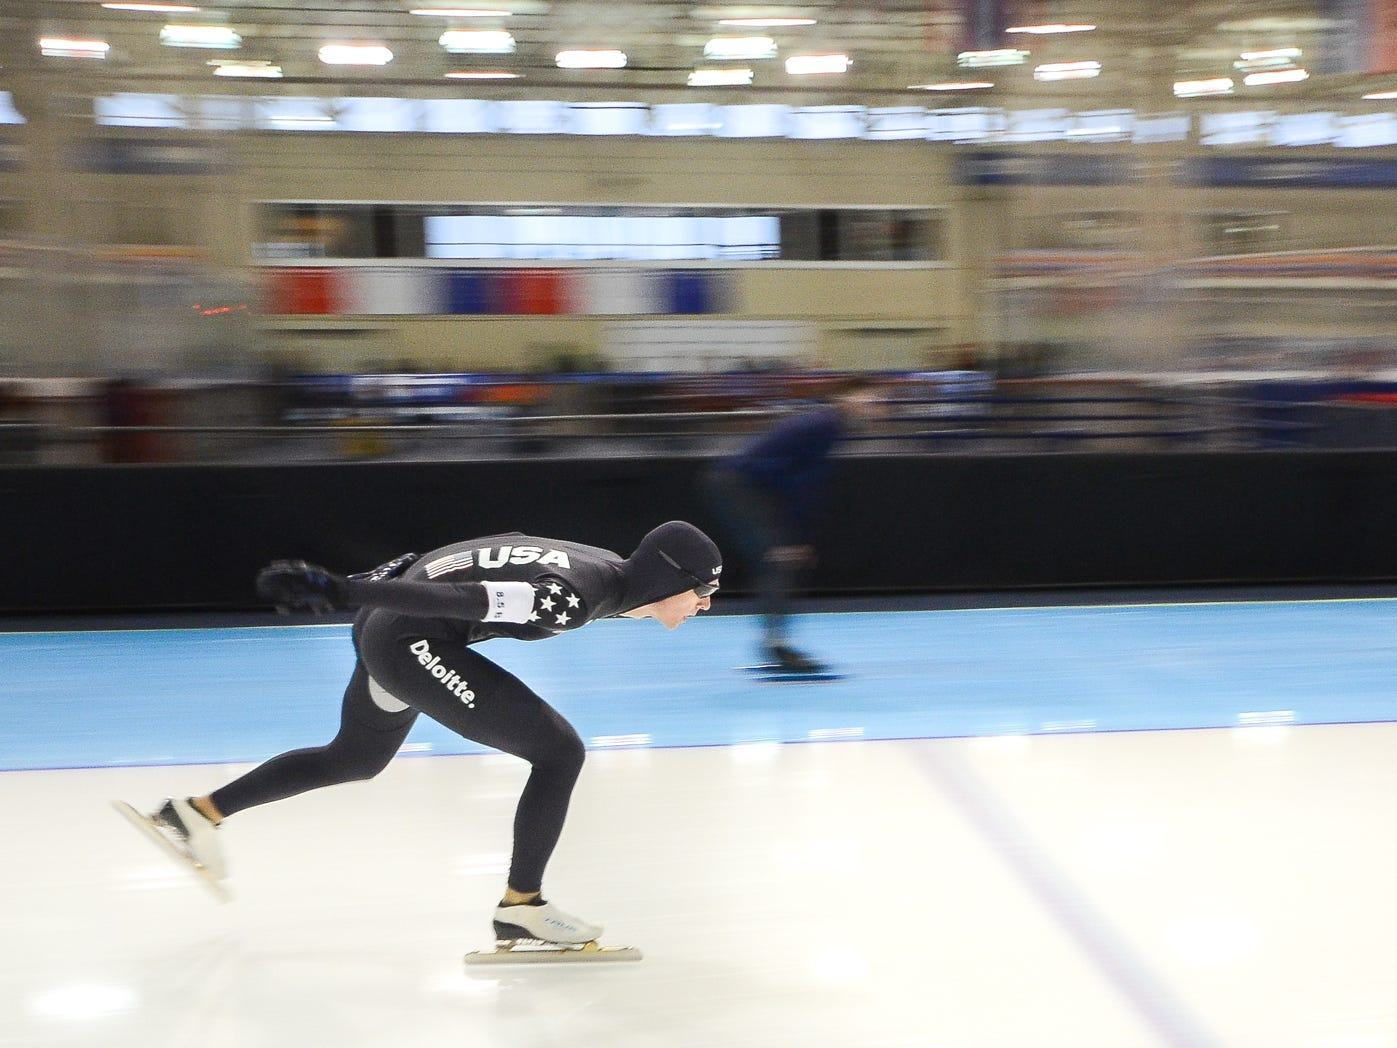 Steve Hartman competes in the men's 1,500 meters at the U.S. World Cup qualifying event Sunday, November 4, 2018, at the Pettit National Ice Center. He finished sixth.